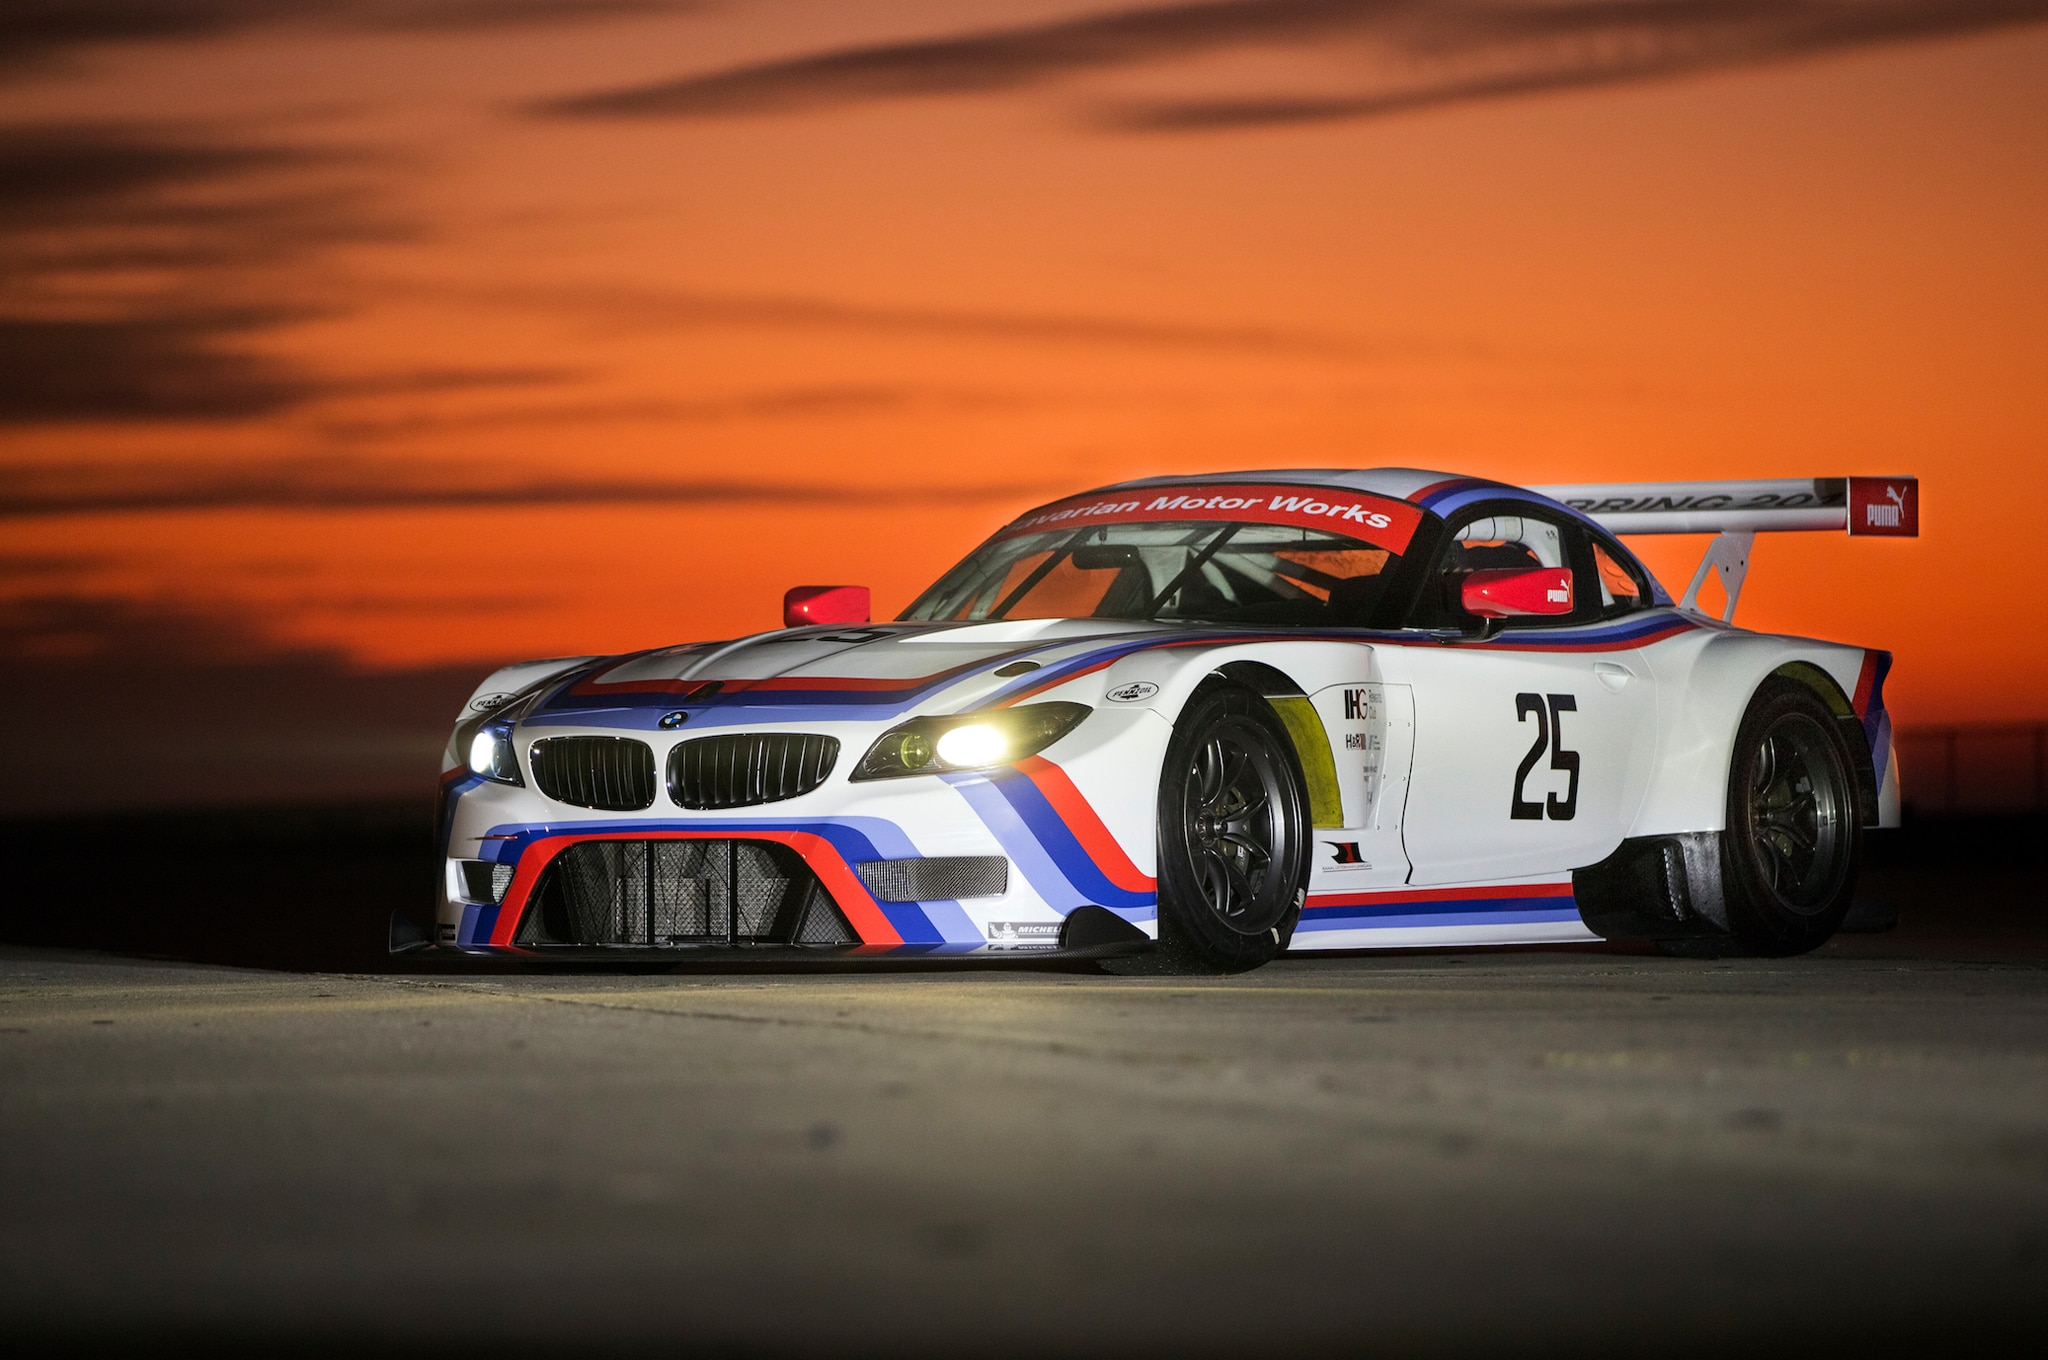 Bmw Unveils Historic Livery For Sebring Bound Z4 Gtlm Racers